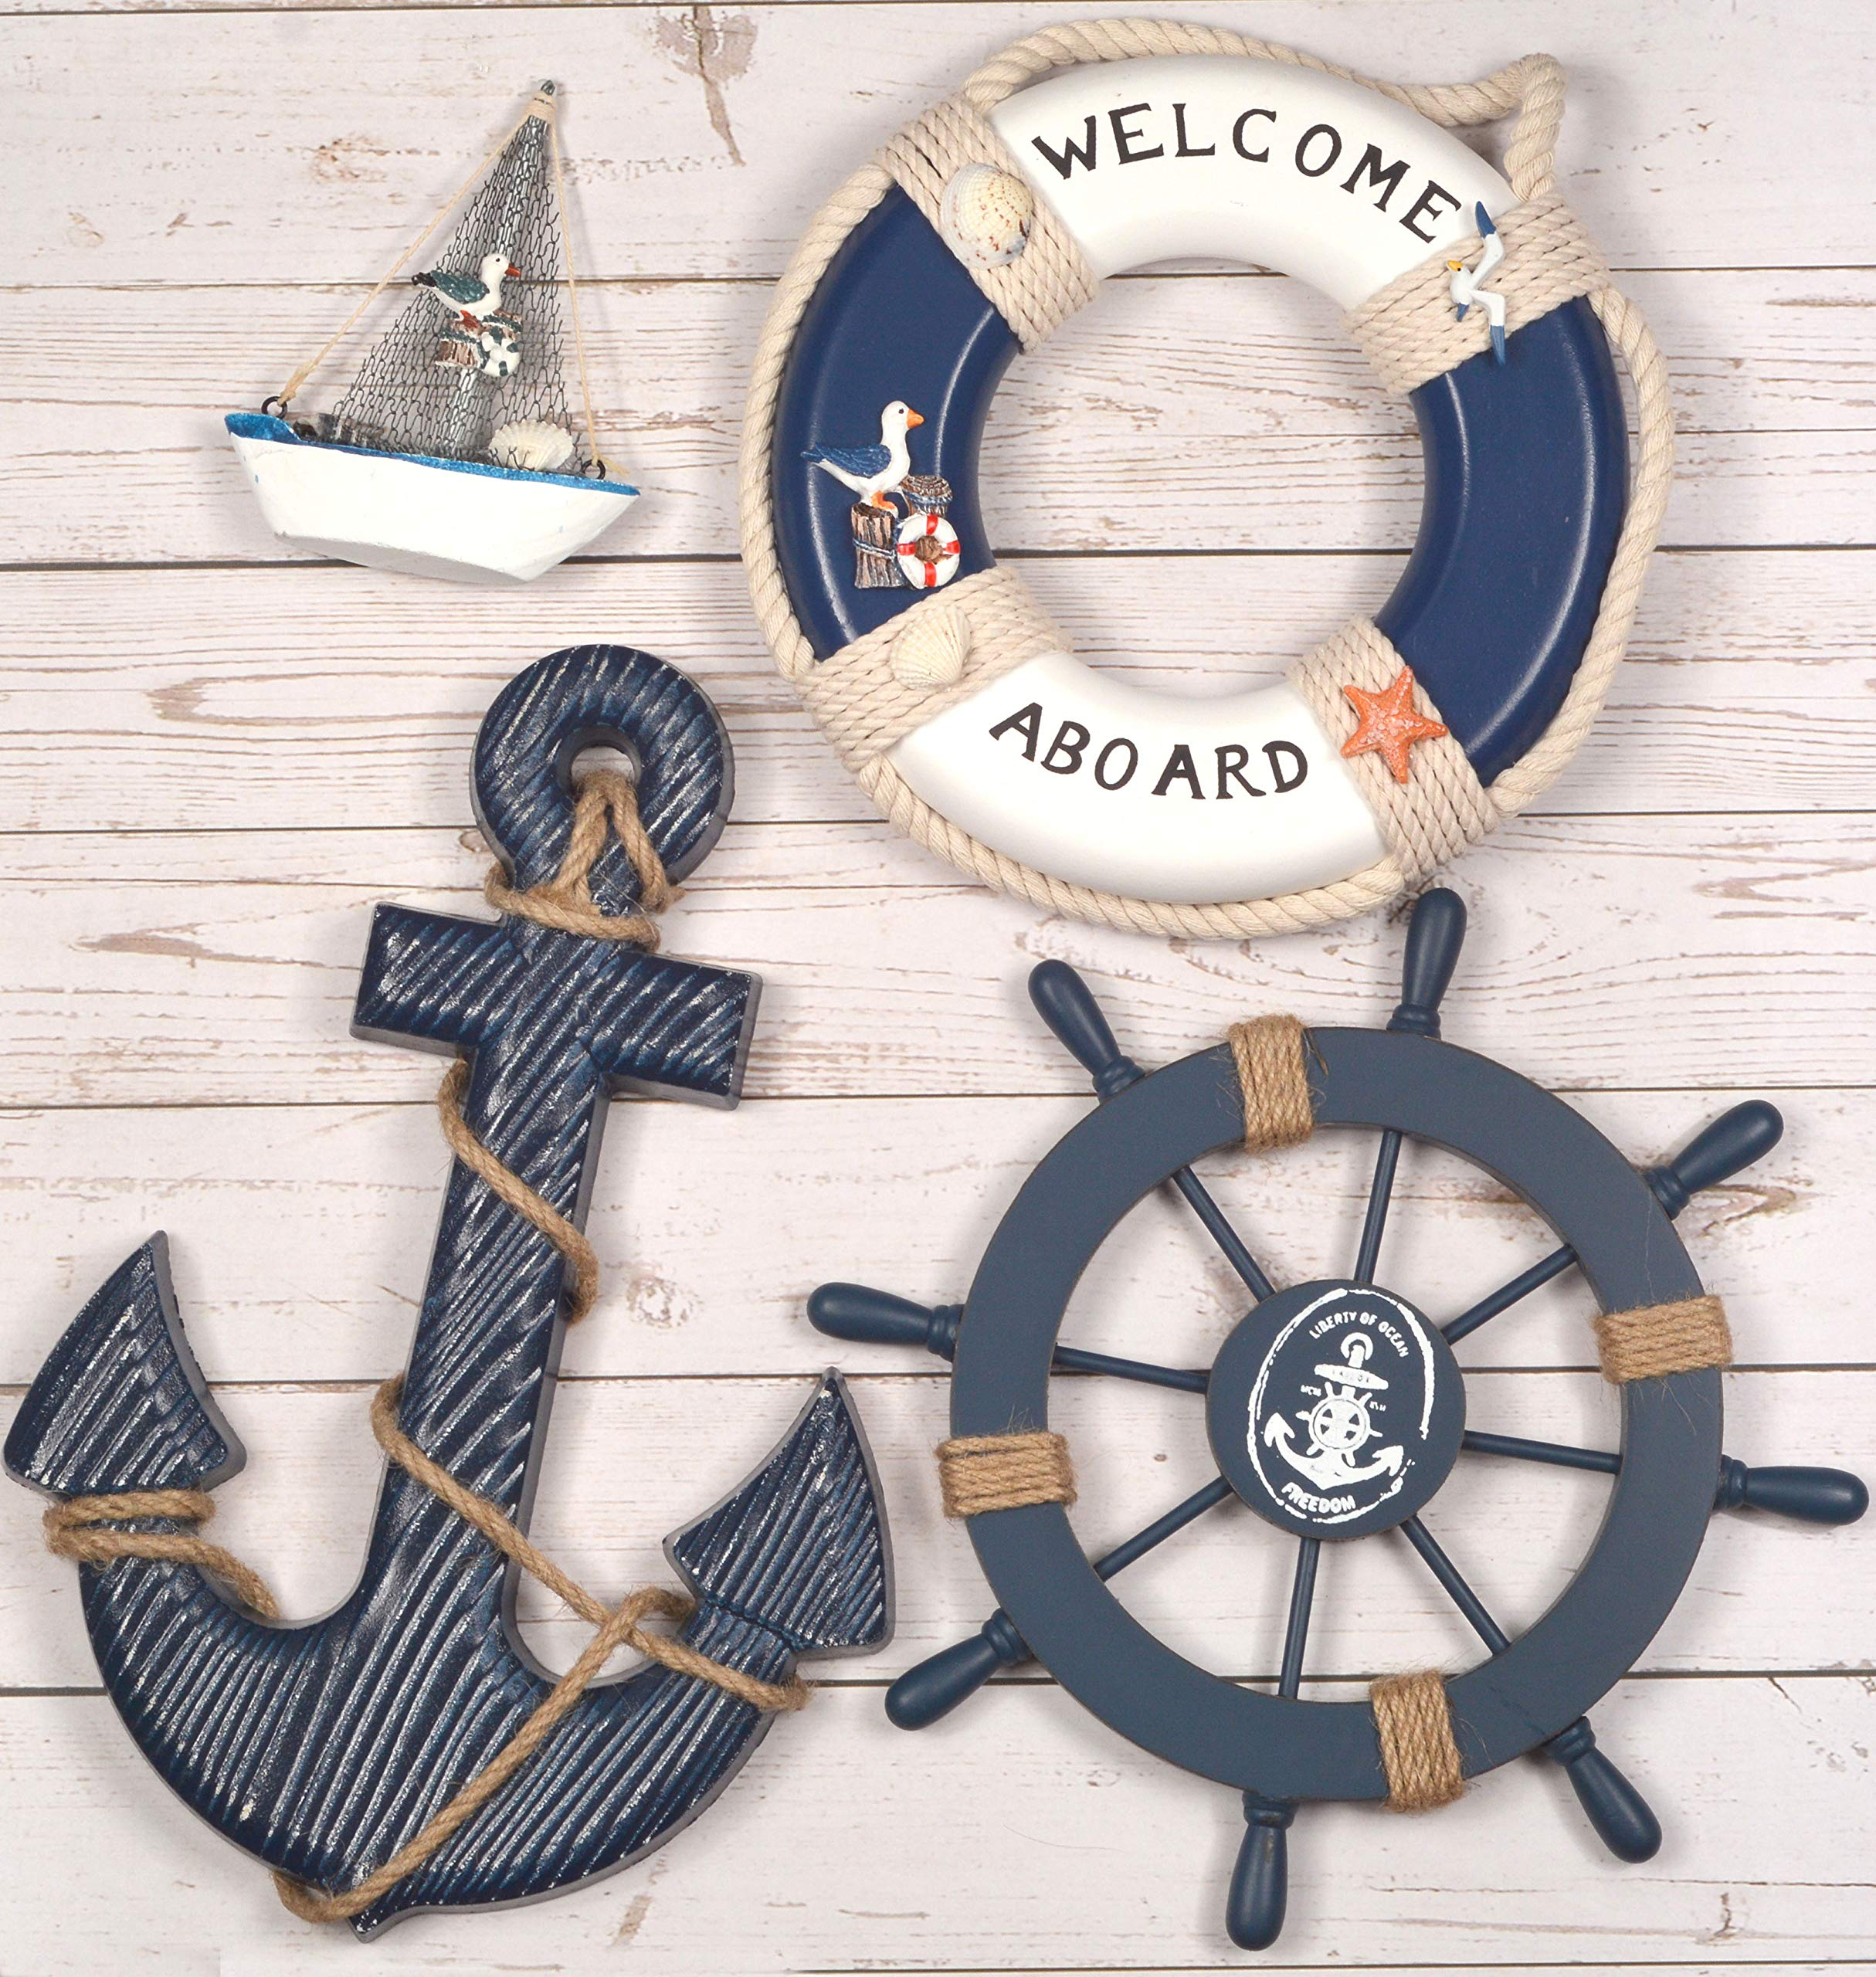 Wooden Nautical Lighthouse Anchor Wall Hanging Ornament, Beach Wooden Boat Ship Steering Wheel Wall Decor, Nautical Sailing Ship Table Display Decor, Nautical Life Ring Wall (Blue) (Blue) by MEANT2TOBE